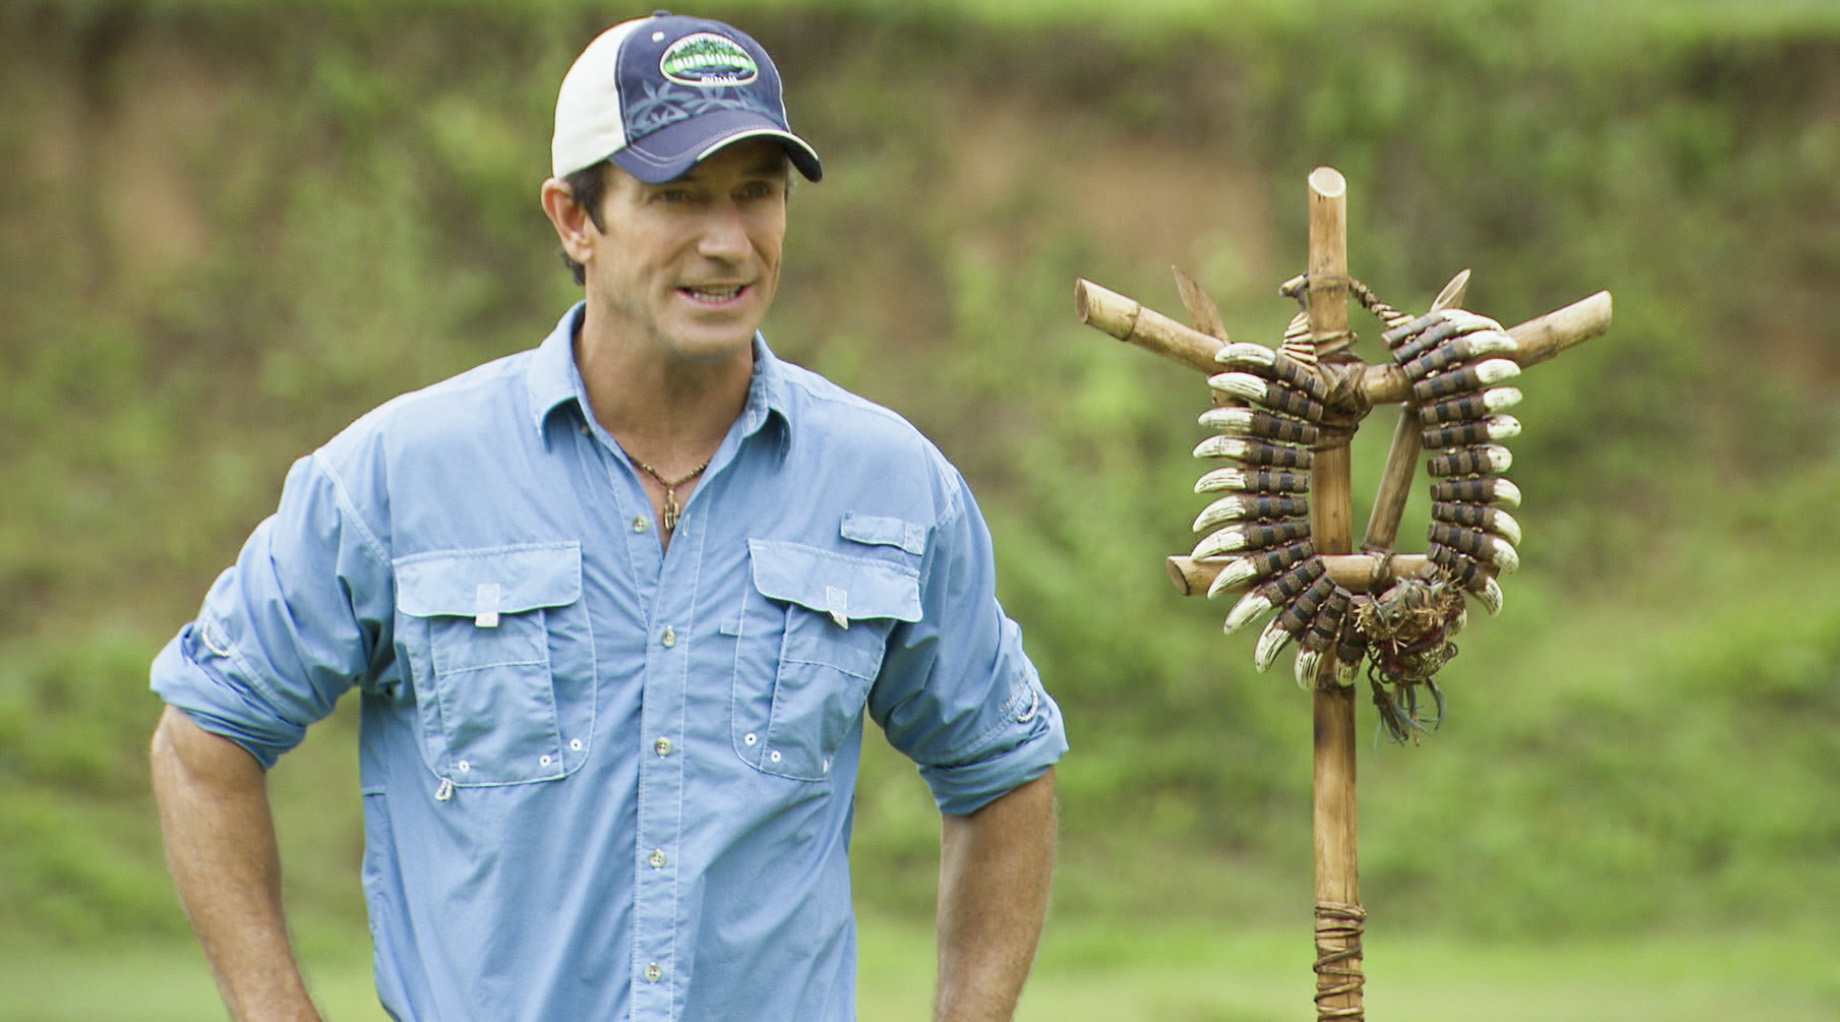 Jeff Probst in the Season 26 Finale